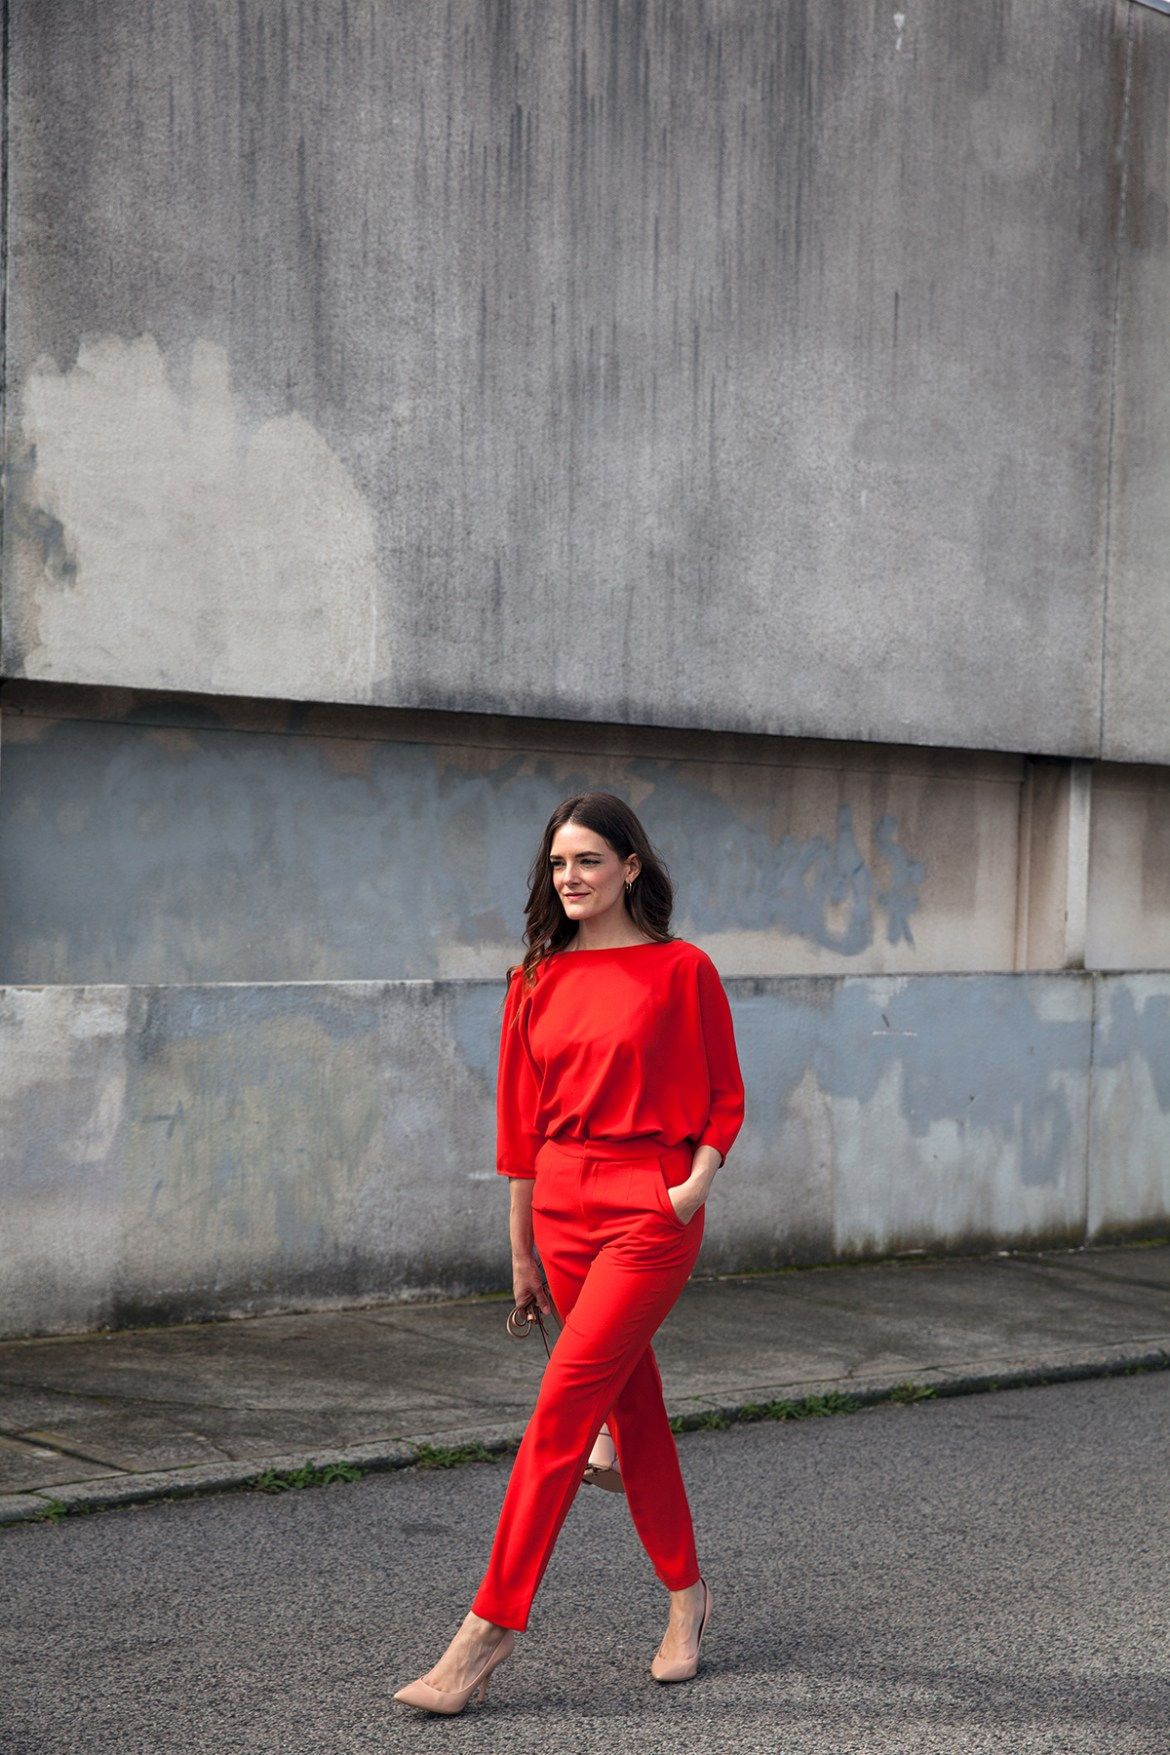 head-to-toe-Red-outfit-Collate-Inspiring-Wit